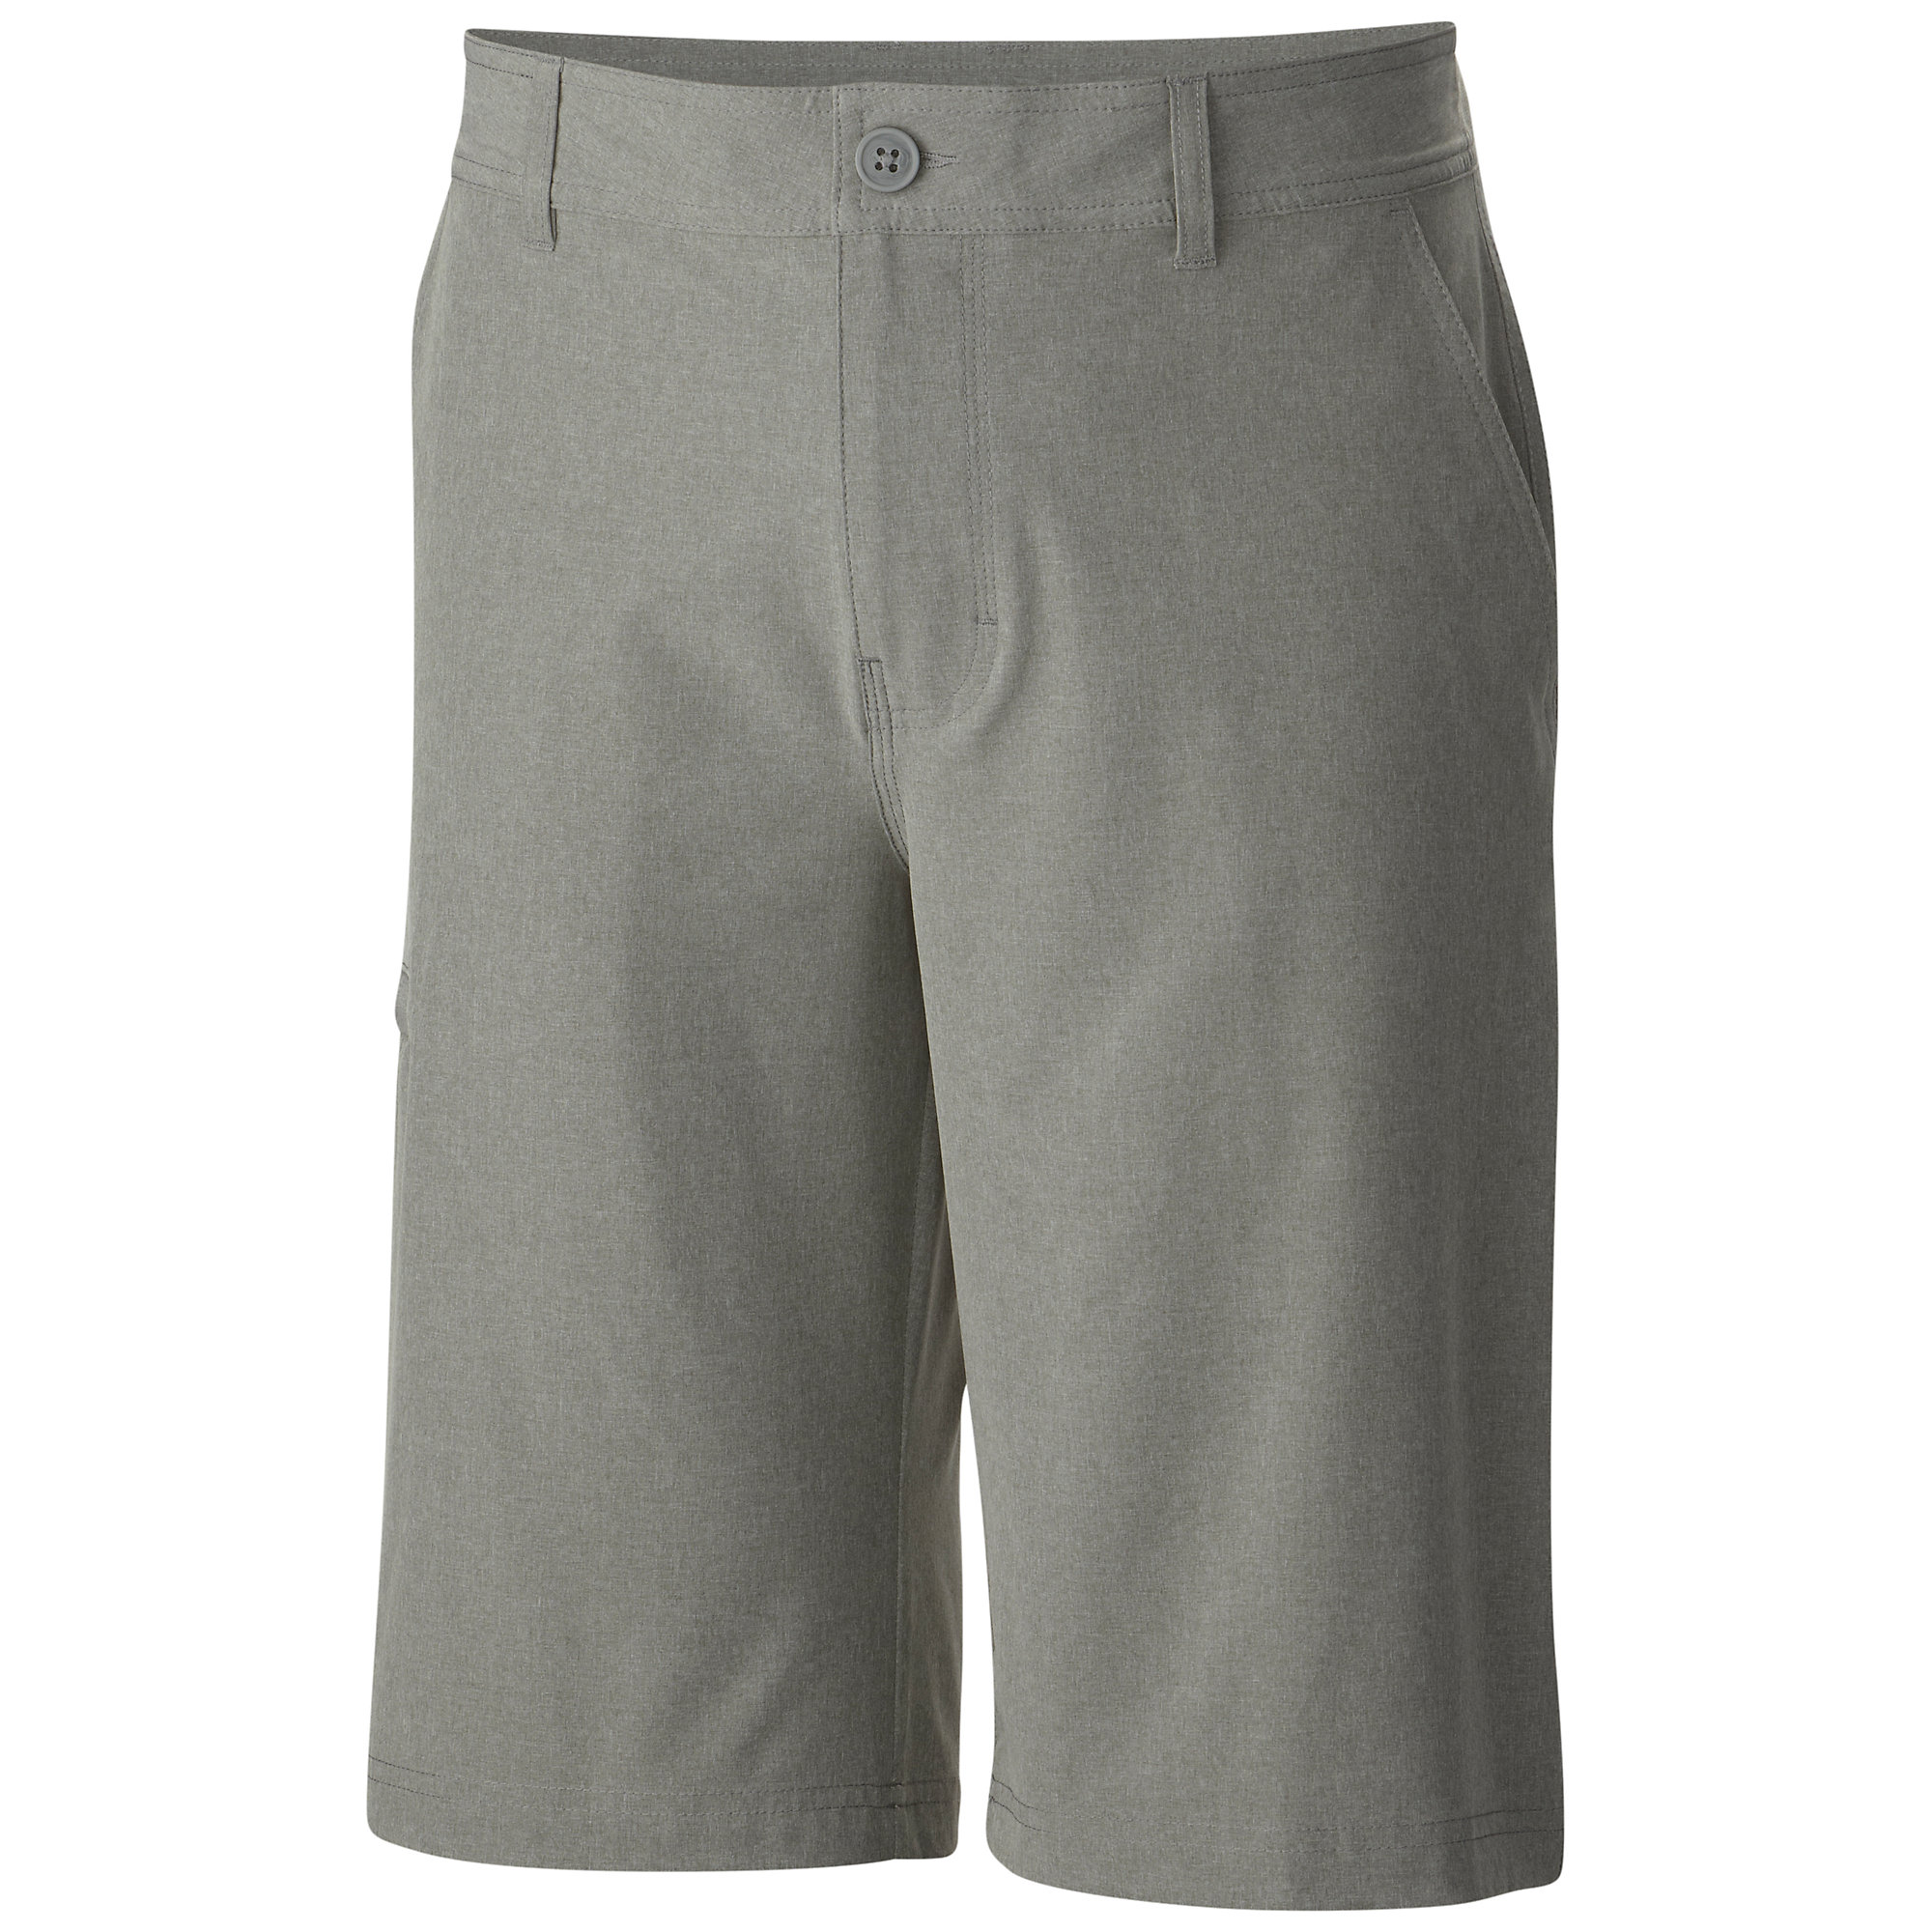 Columbia Global Adventure II Short